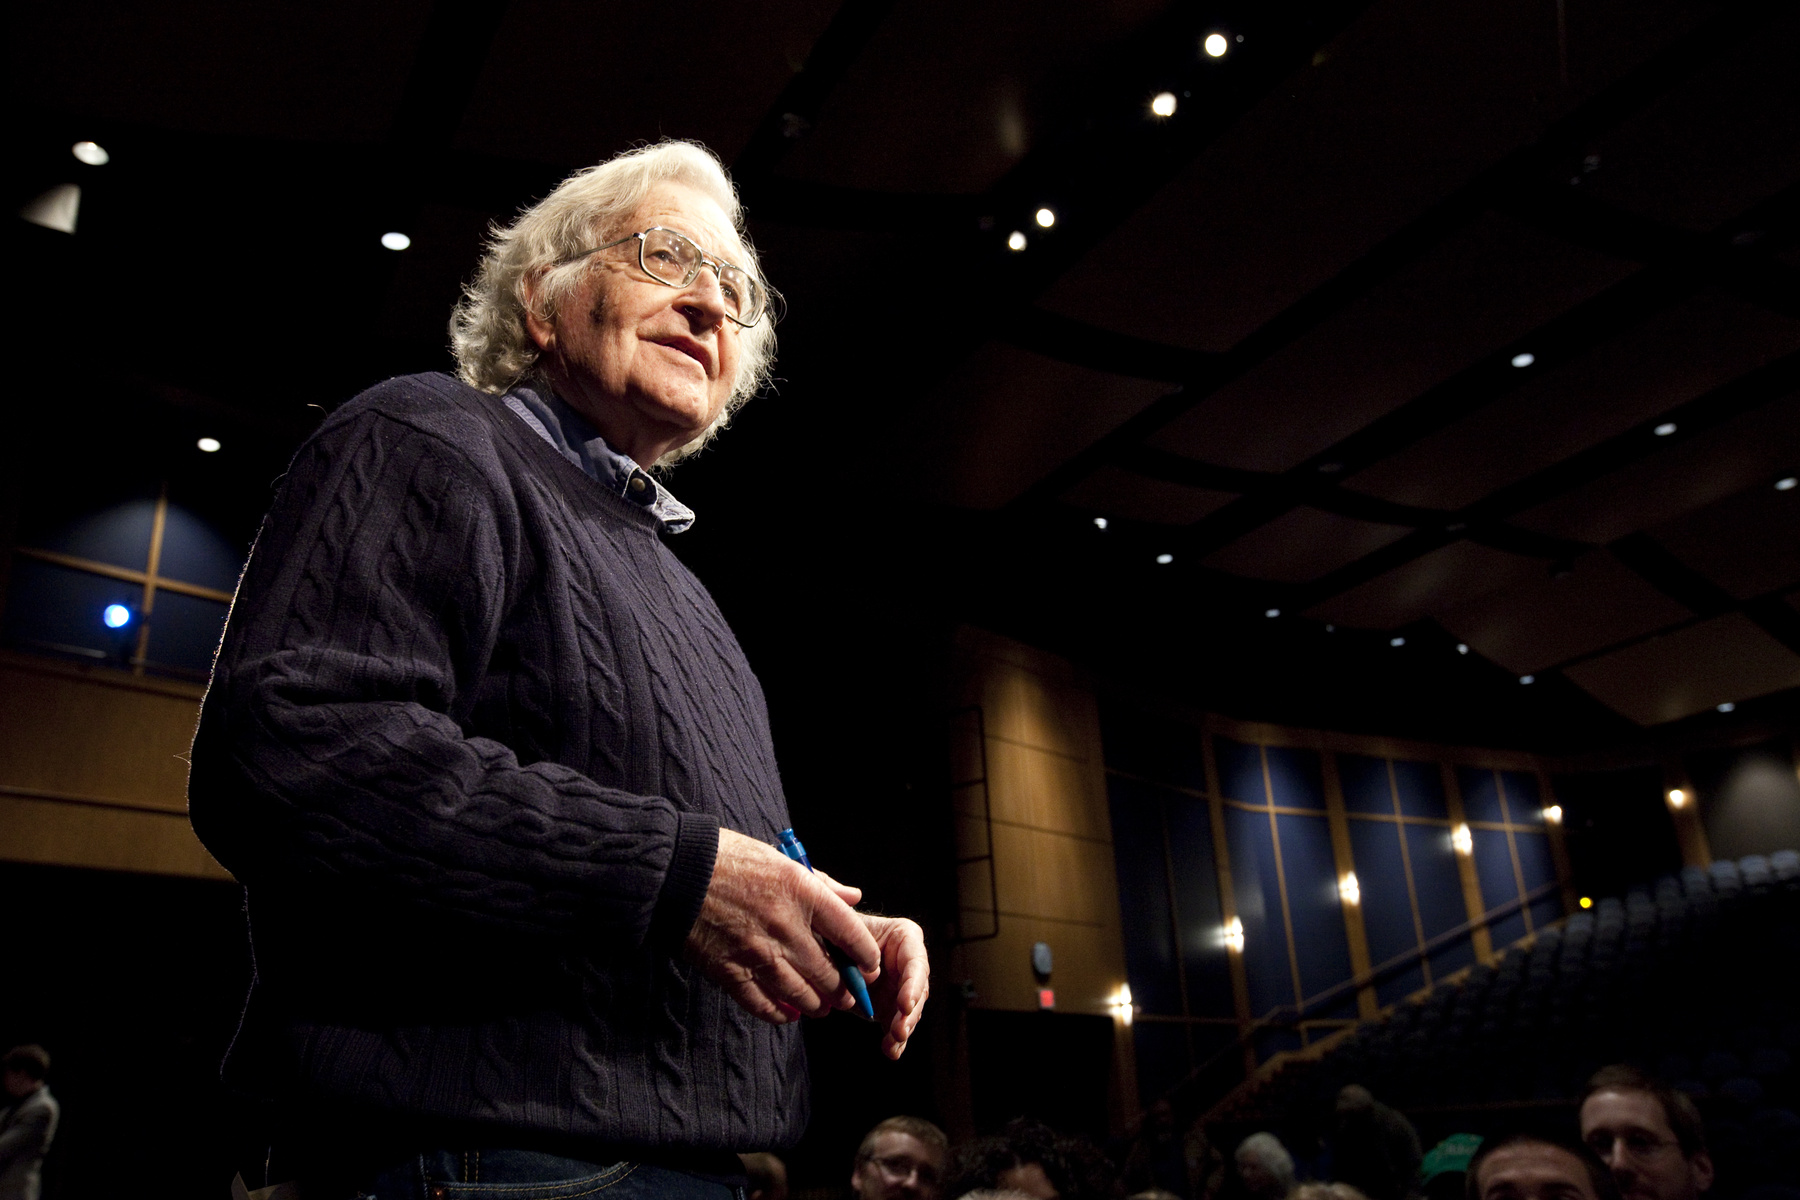 Noam Chomsky at CGH event